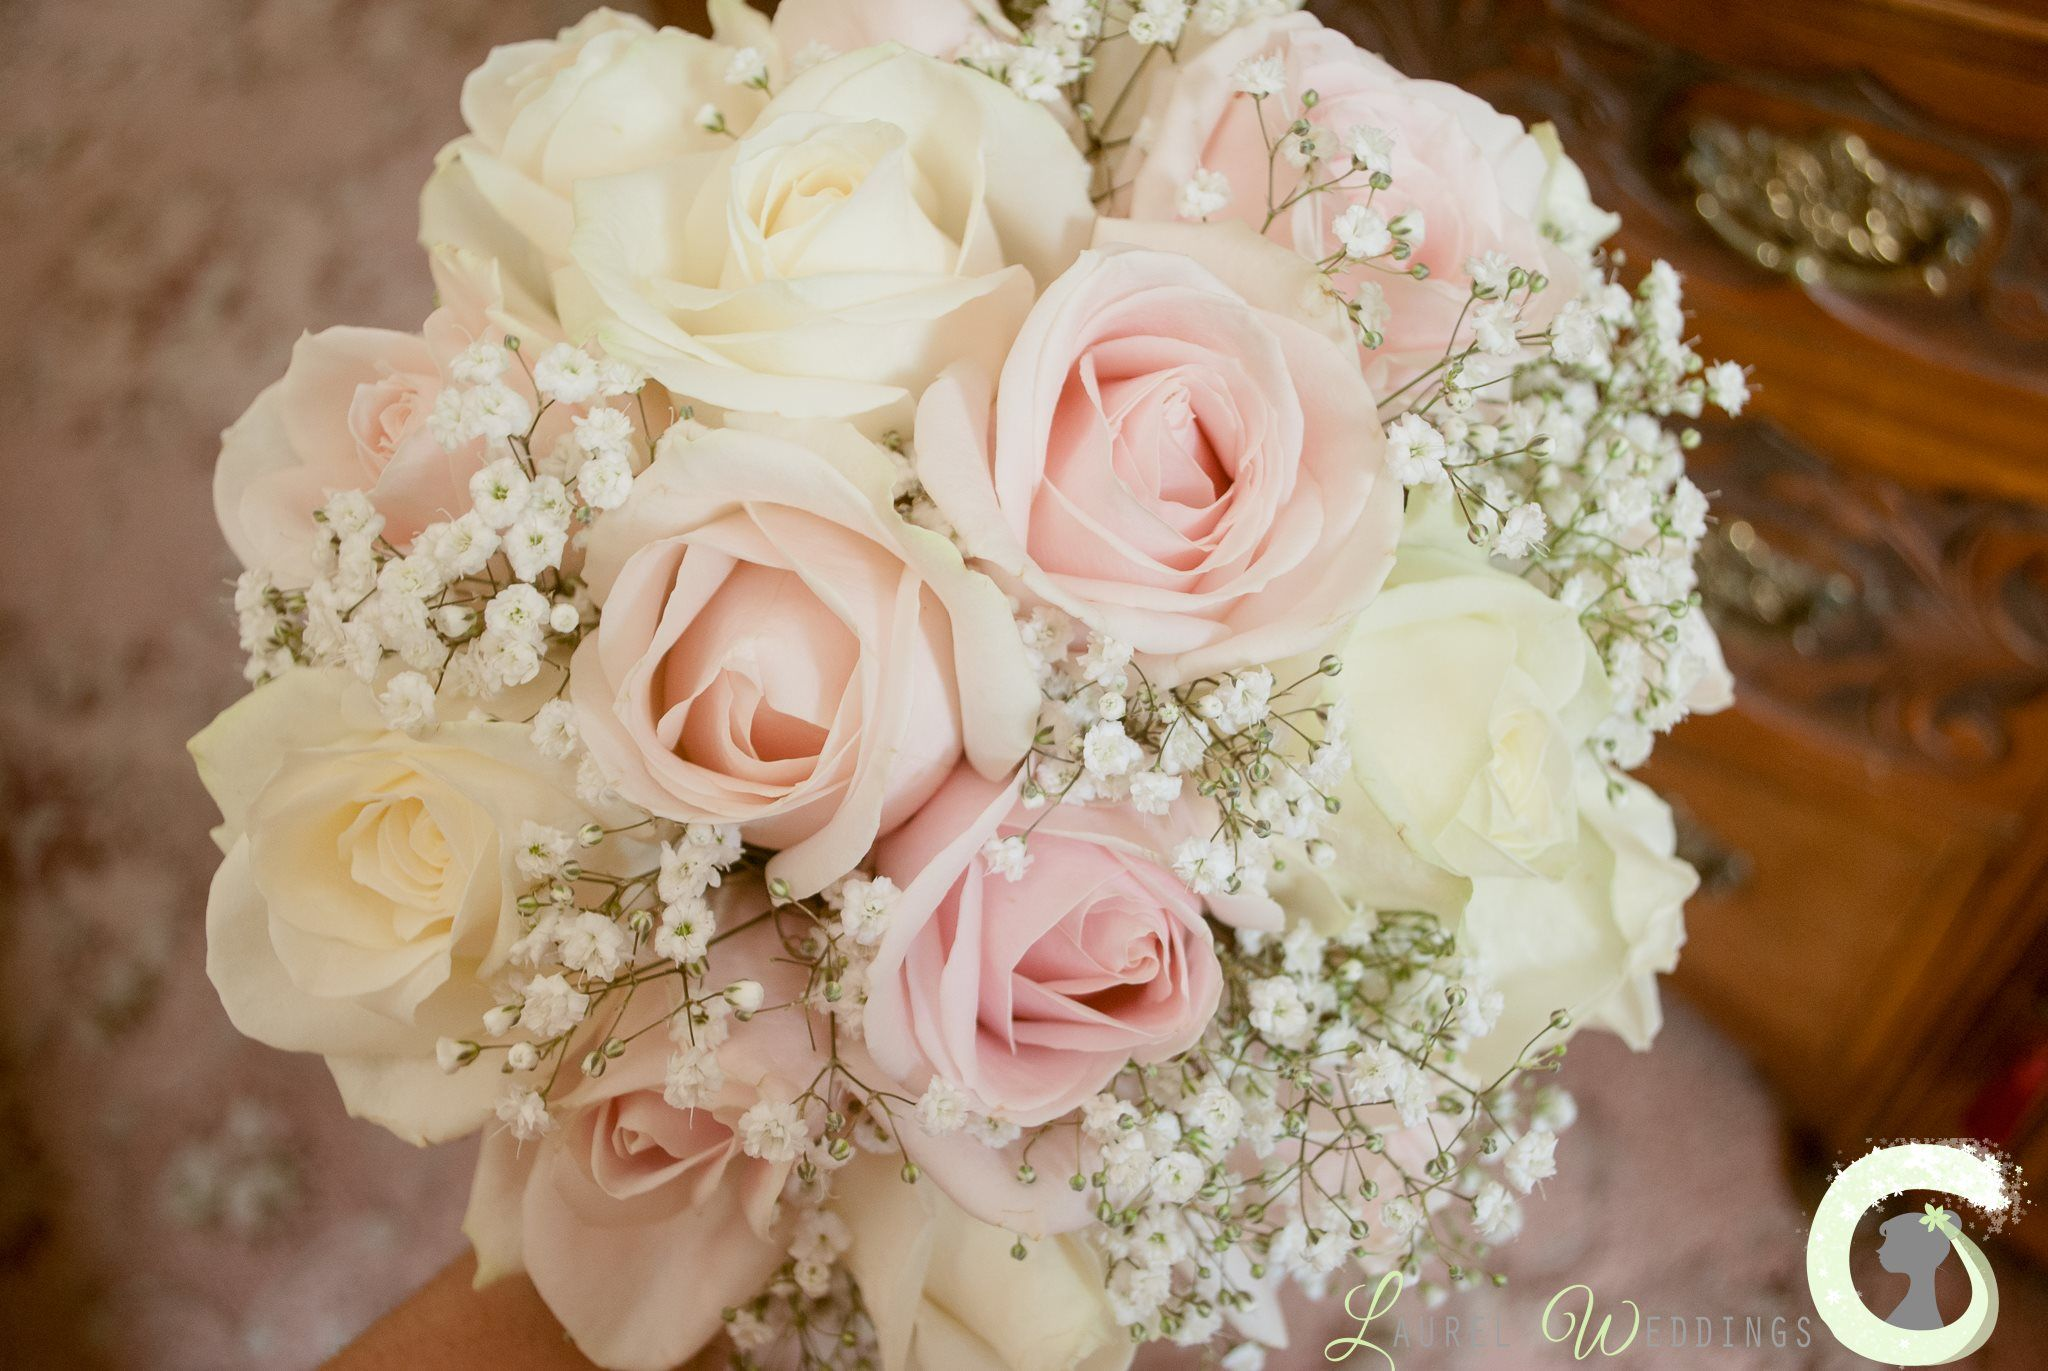 Roses And Gypsophila Bouquet In Ivory And Blush Pink Wedding